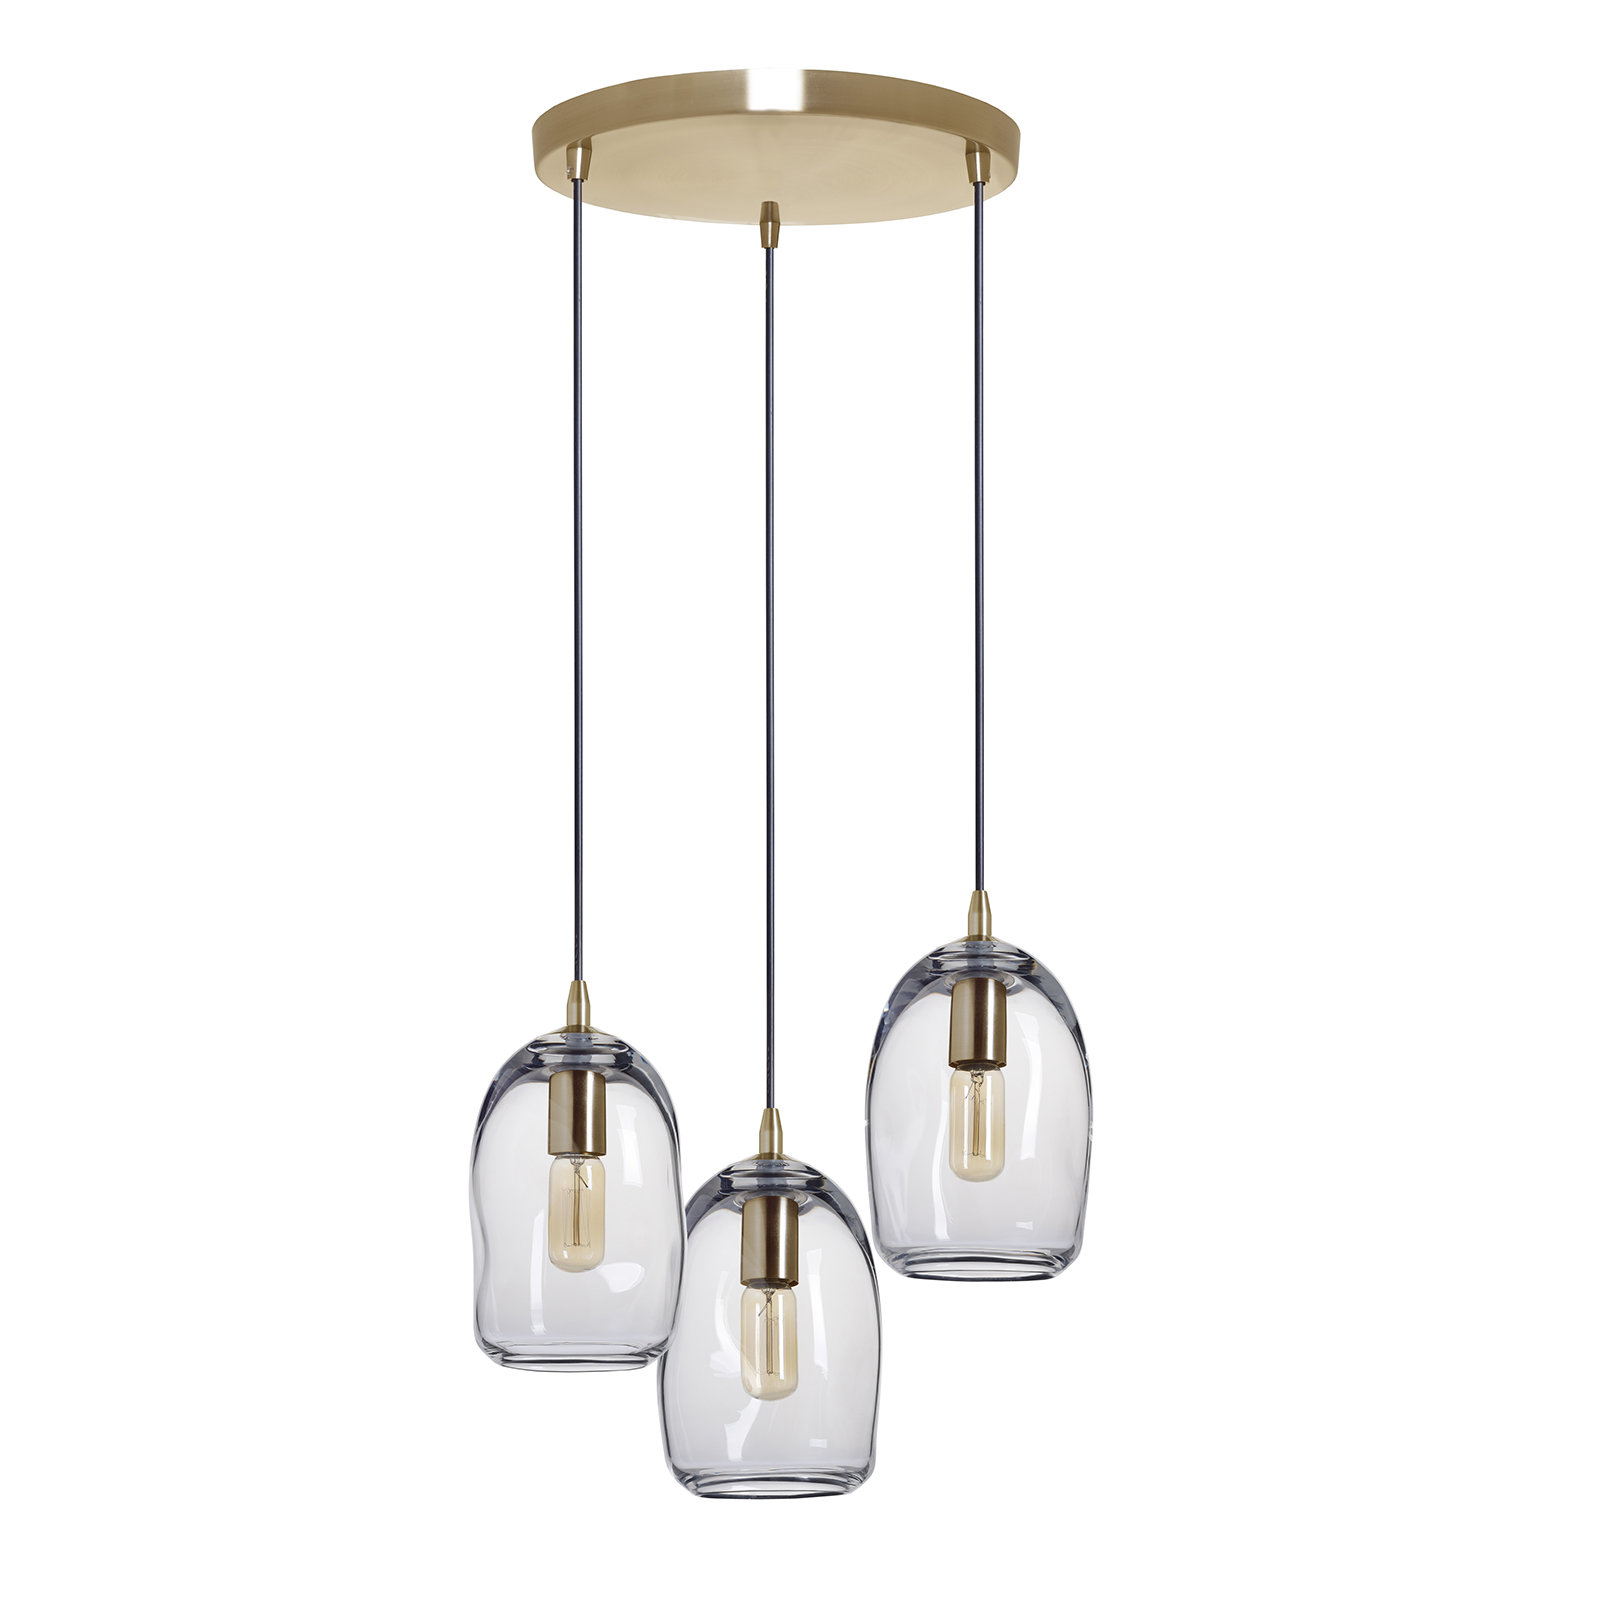 Newest 3 Light Cluster Bell Pendant Throughout Vernice 3 Light Cluster Bell Pendants (View 5 of 25)